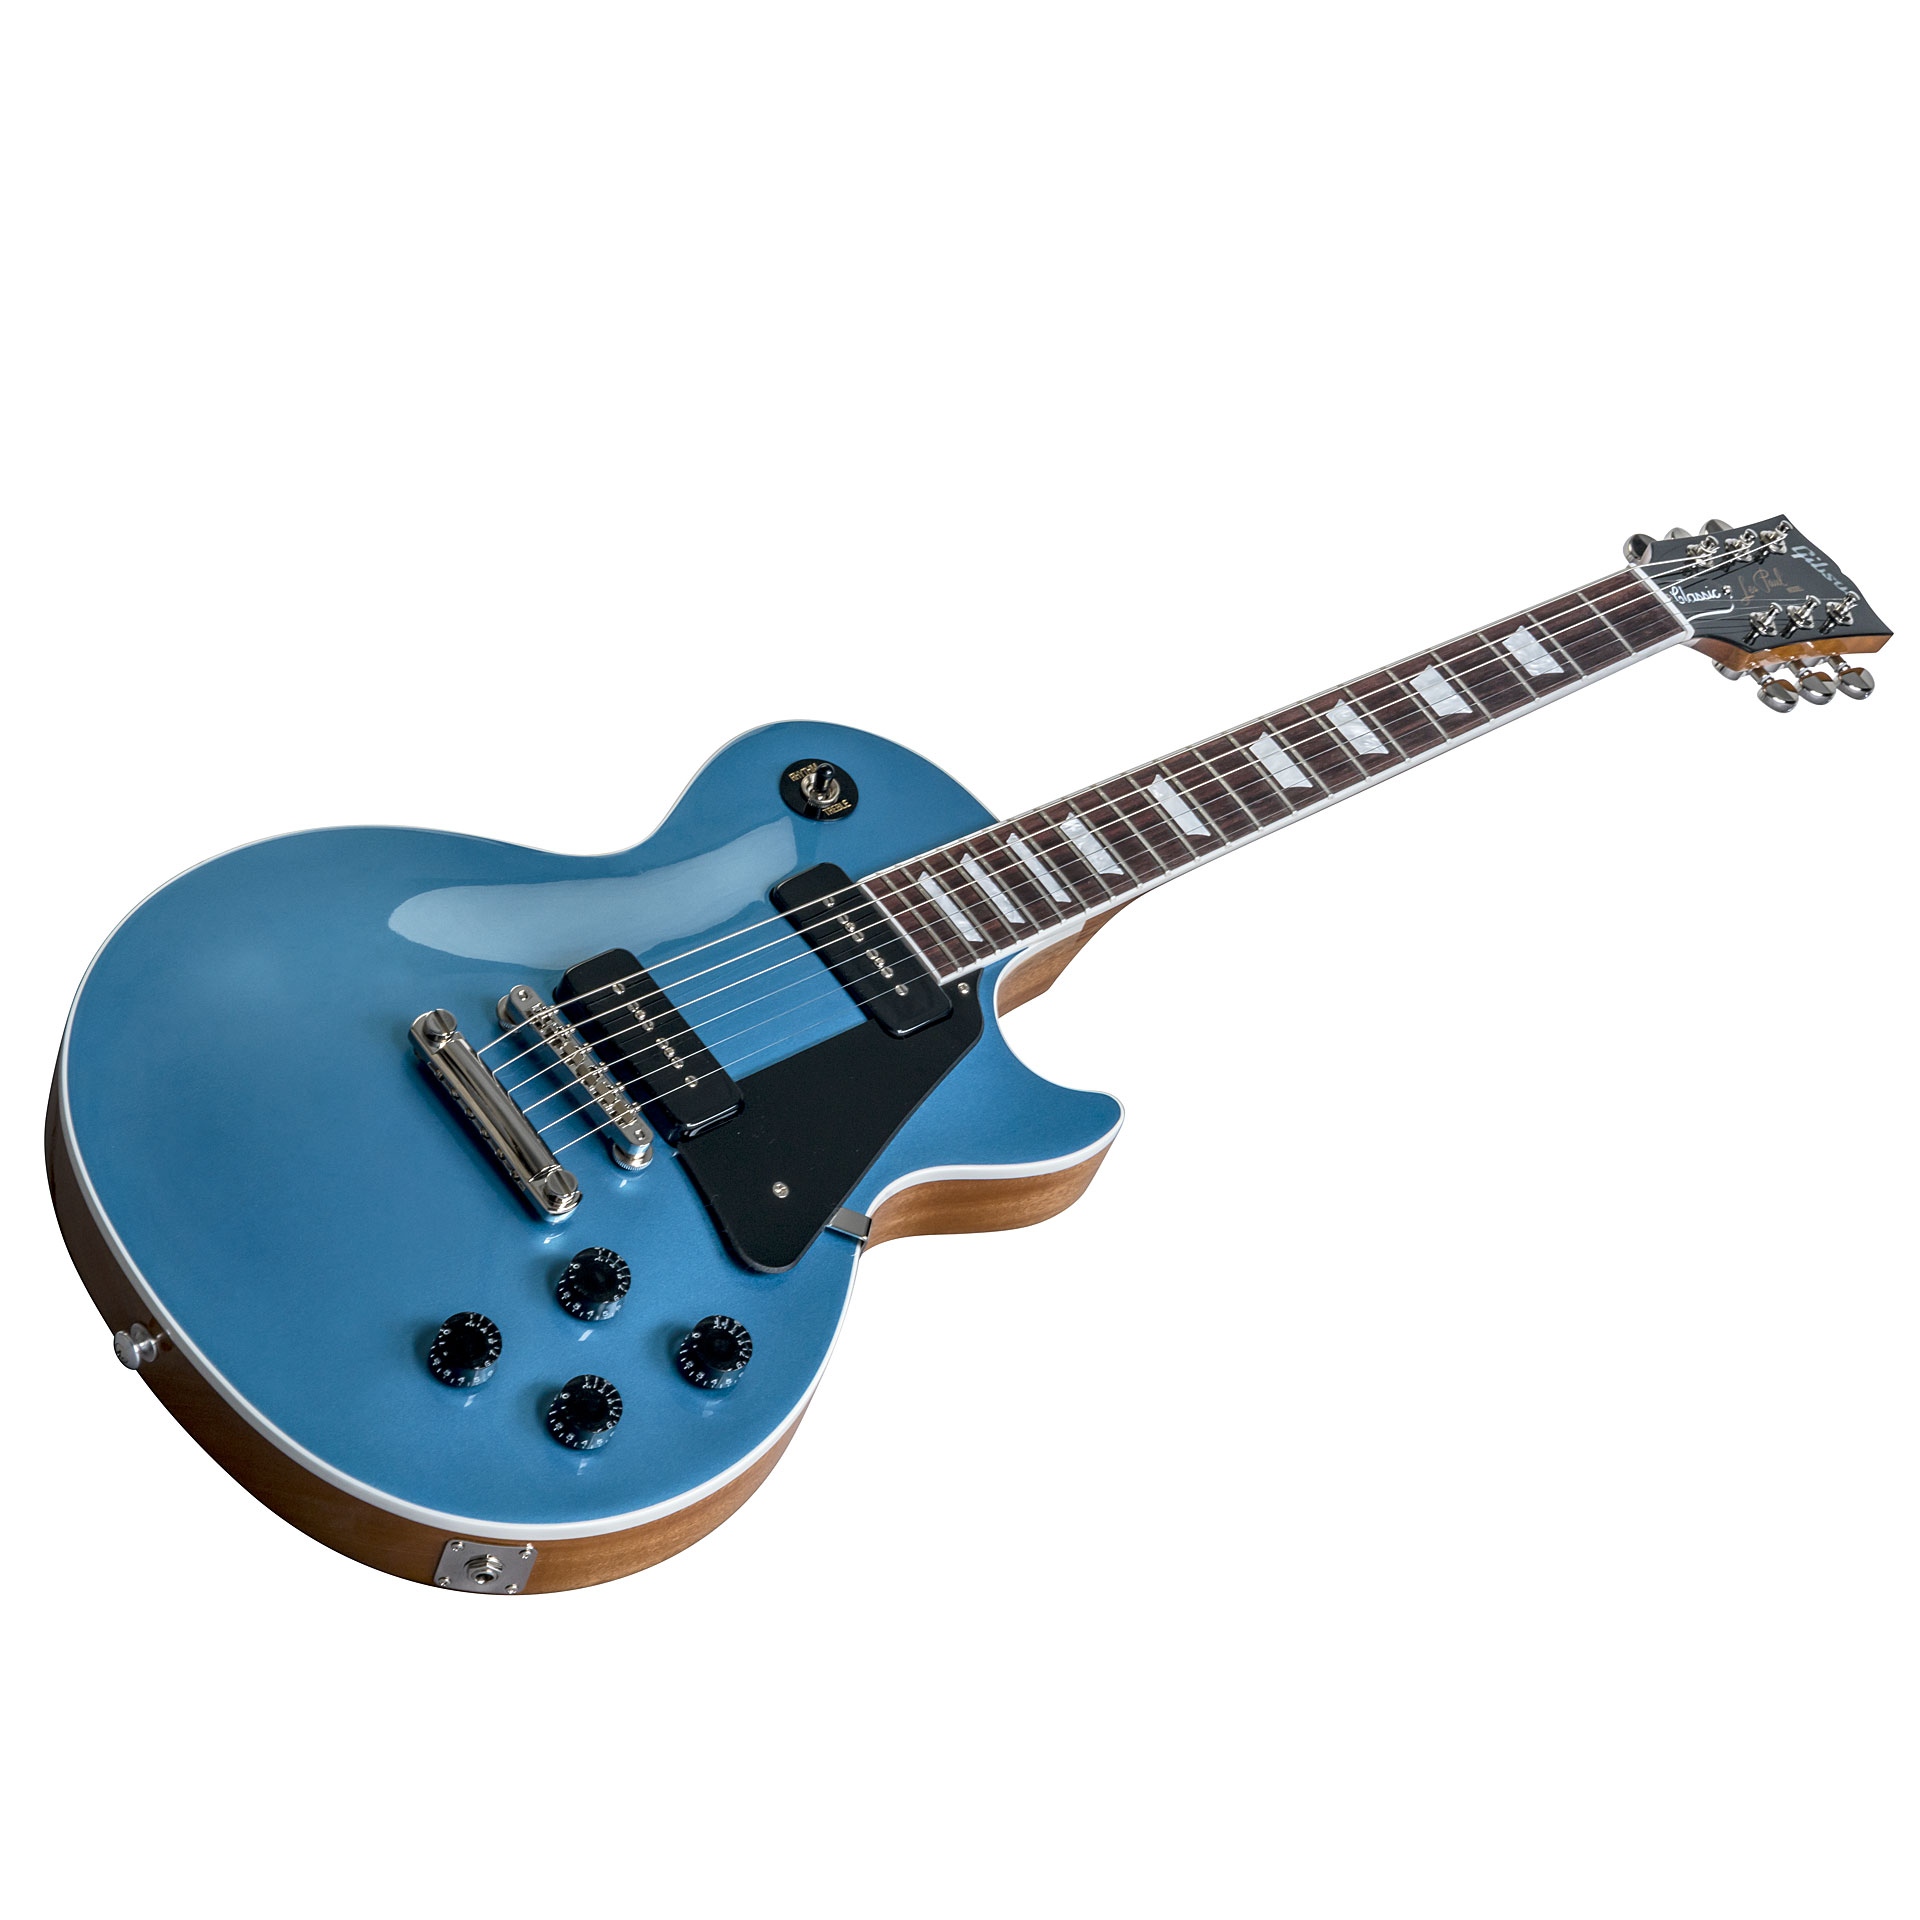 gibson les paul classic 2018 pelham blue guitare lectrique. Black Bedroom Furniture Sets. Home Design Ideas